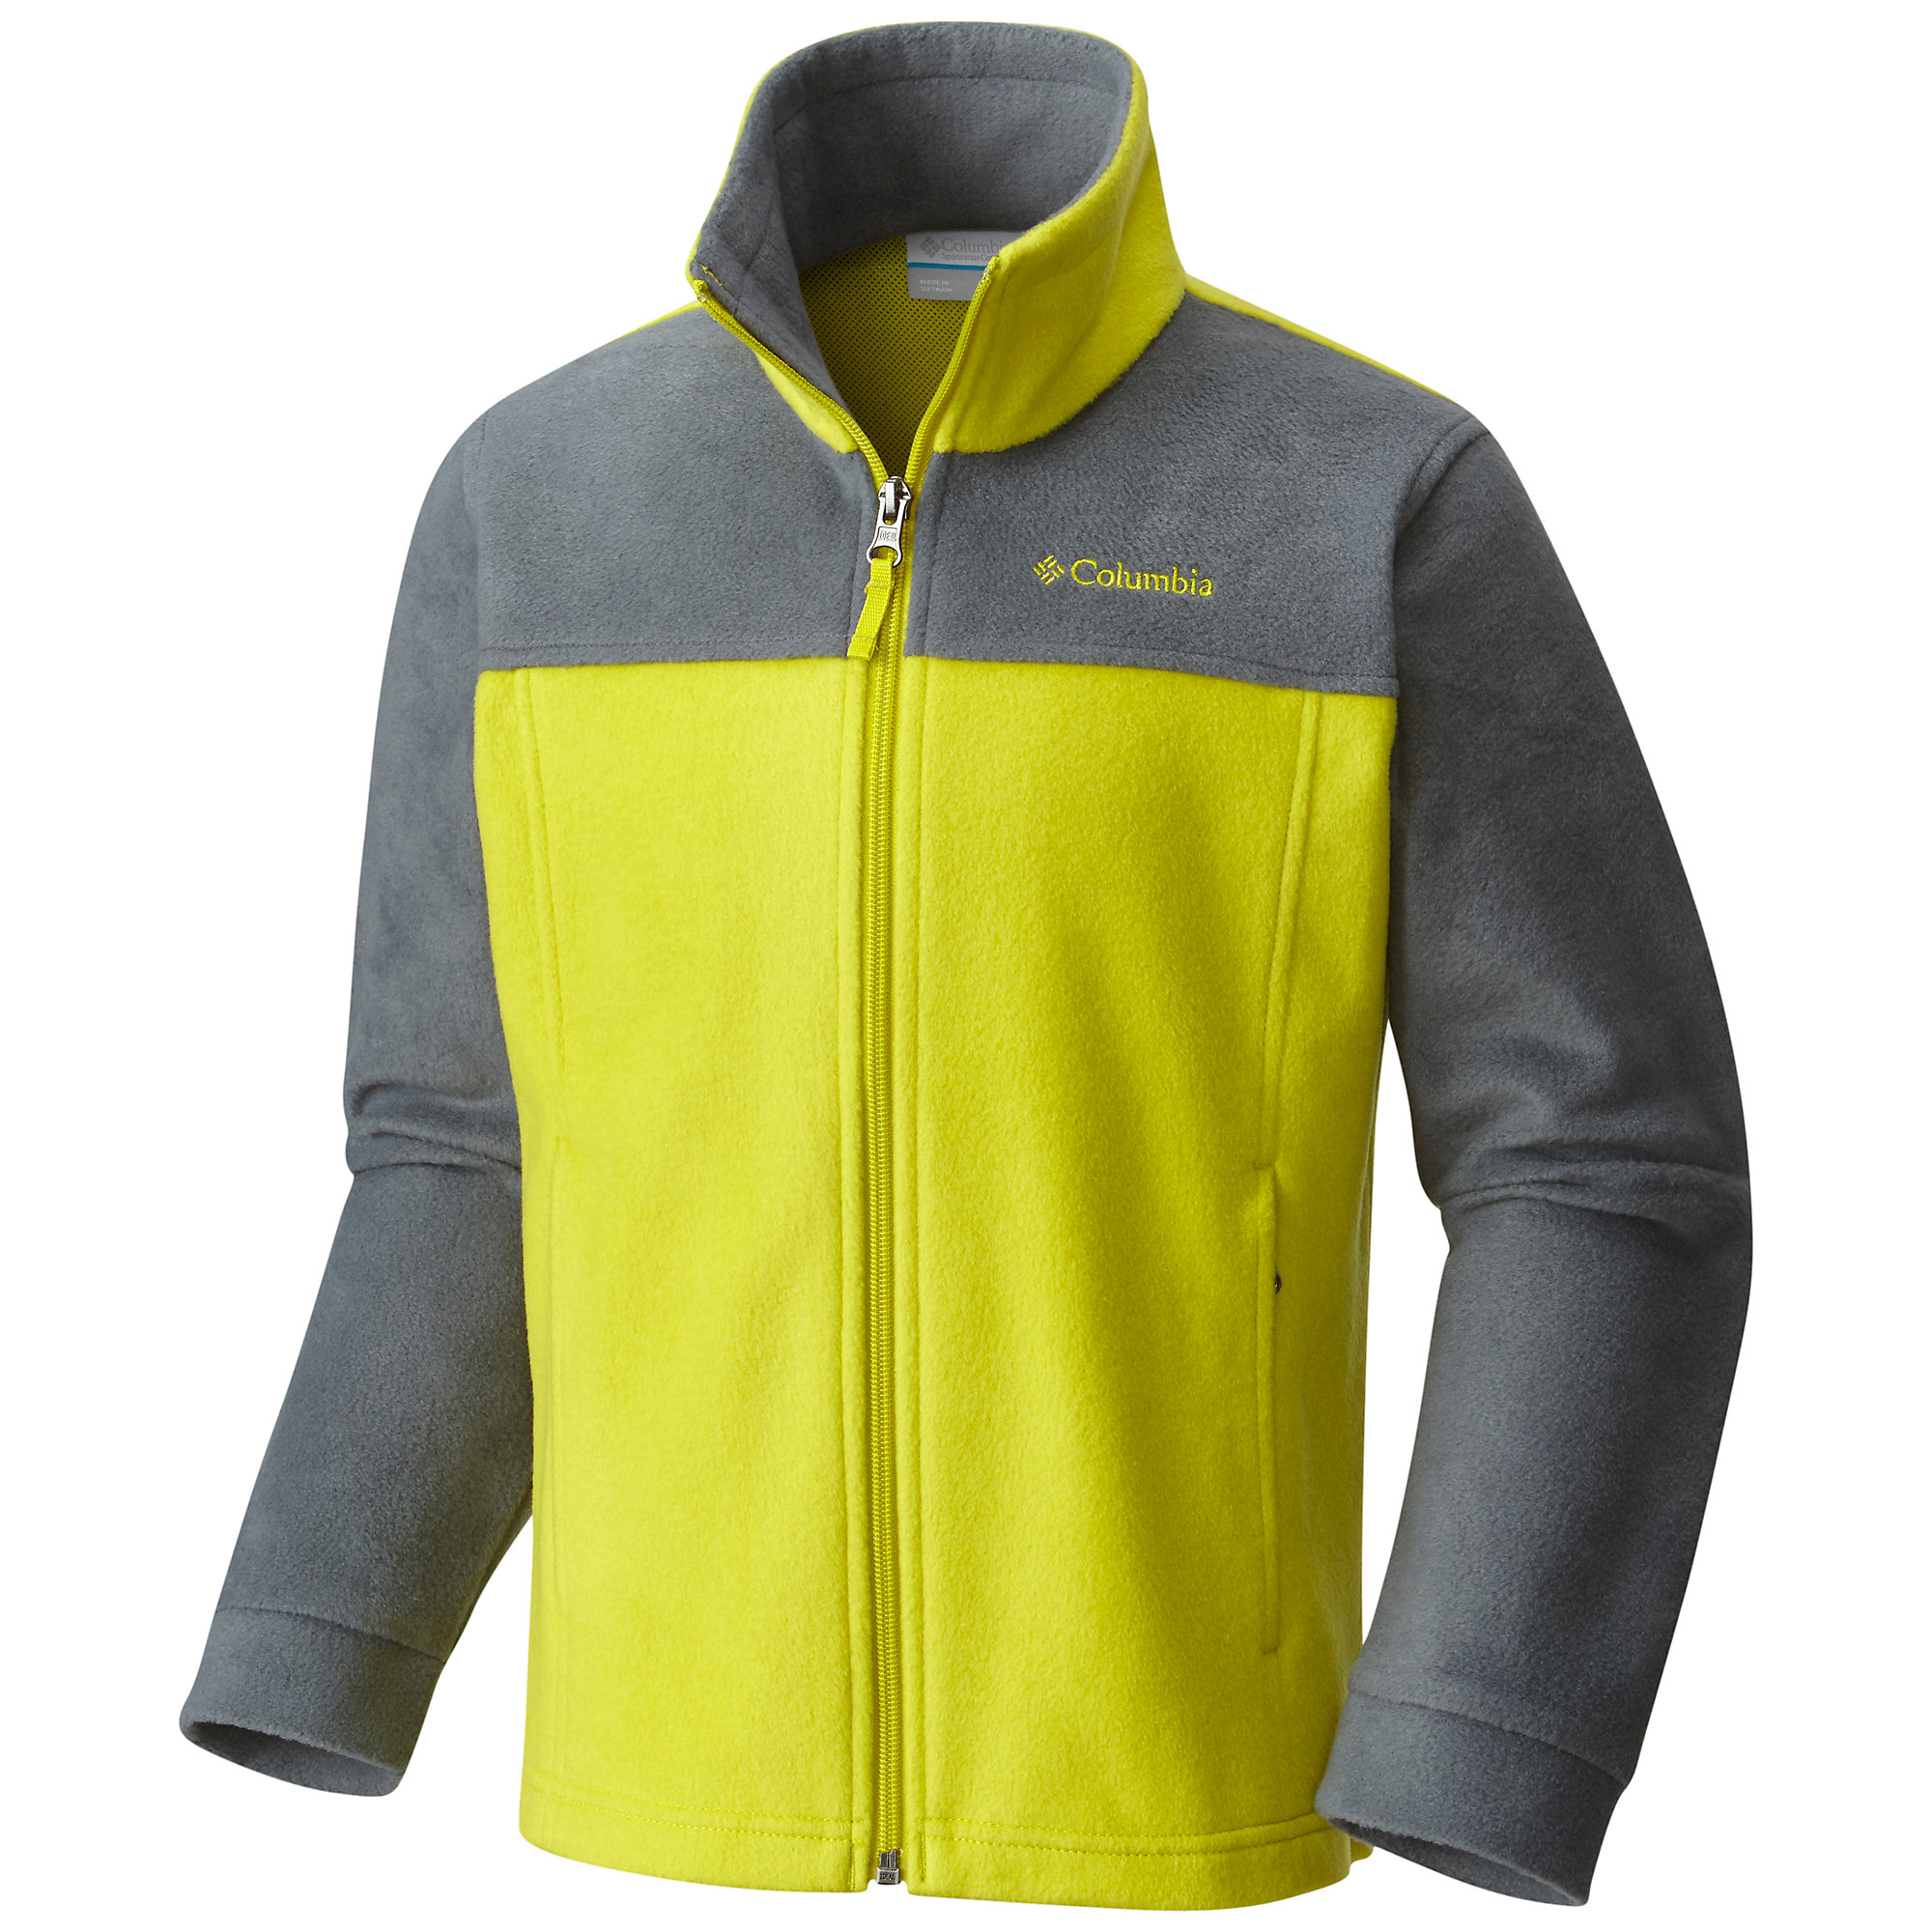 Columbia Dotswarm Full Zip Jacket